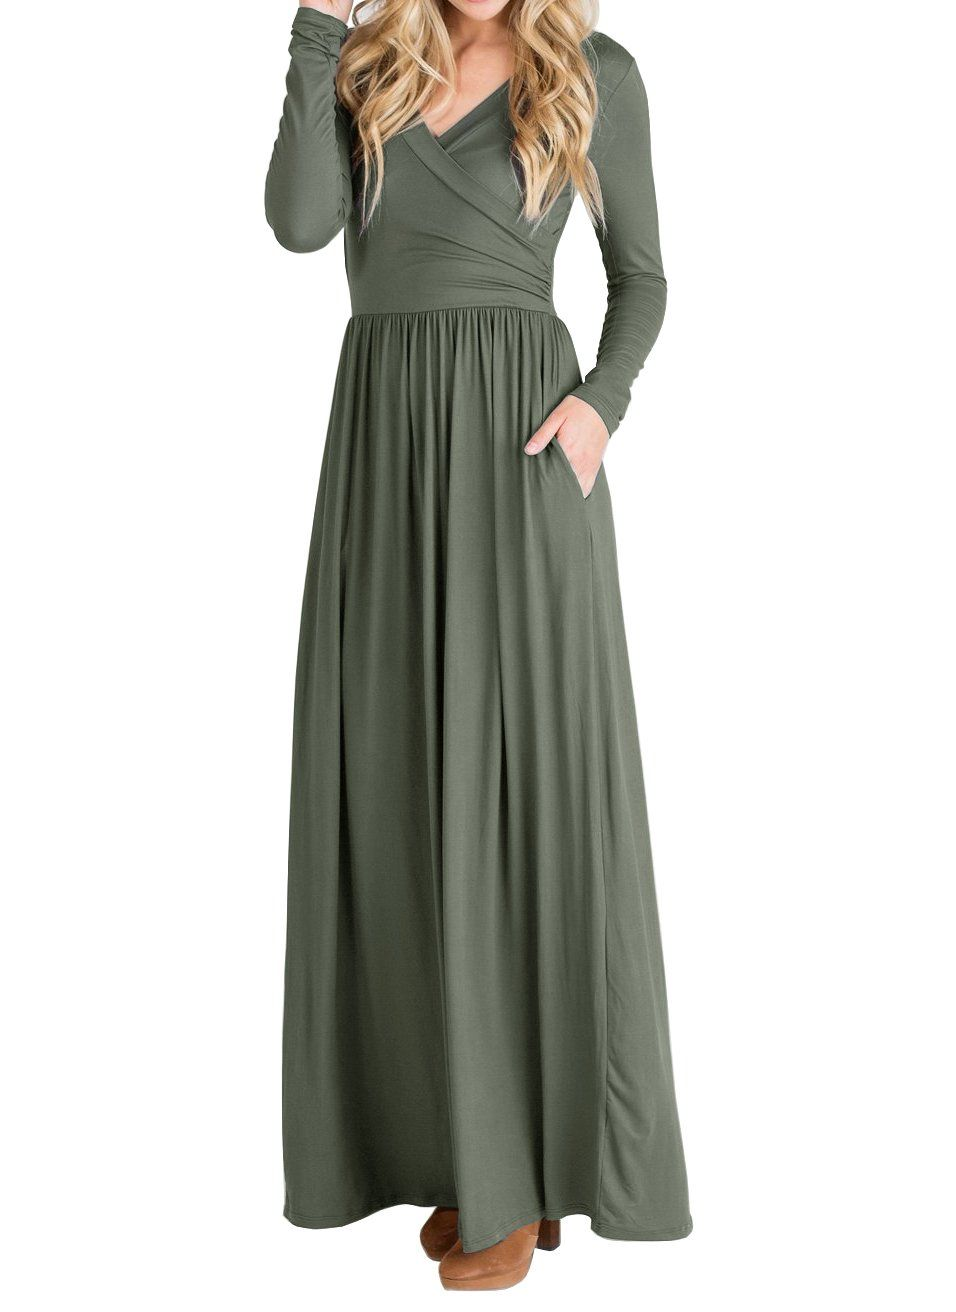 32230235d489 Maternity Styles - Beautife Womens Dresses Casual Long Sleeve V Neck Faux  Wrap Loose Plain Maxi Dress With PocketsGreenMedium -- You could obtain  added ...